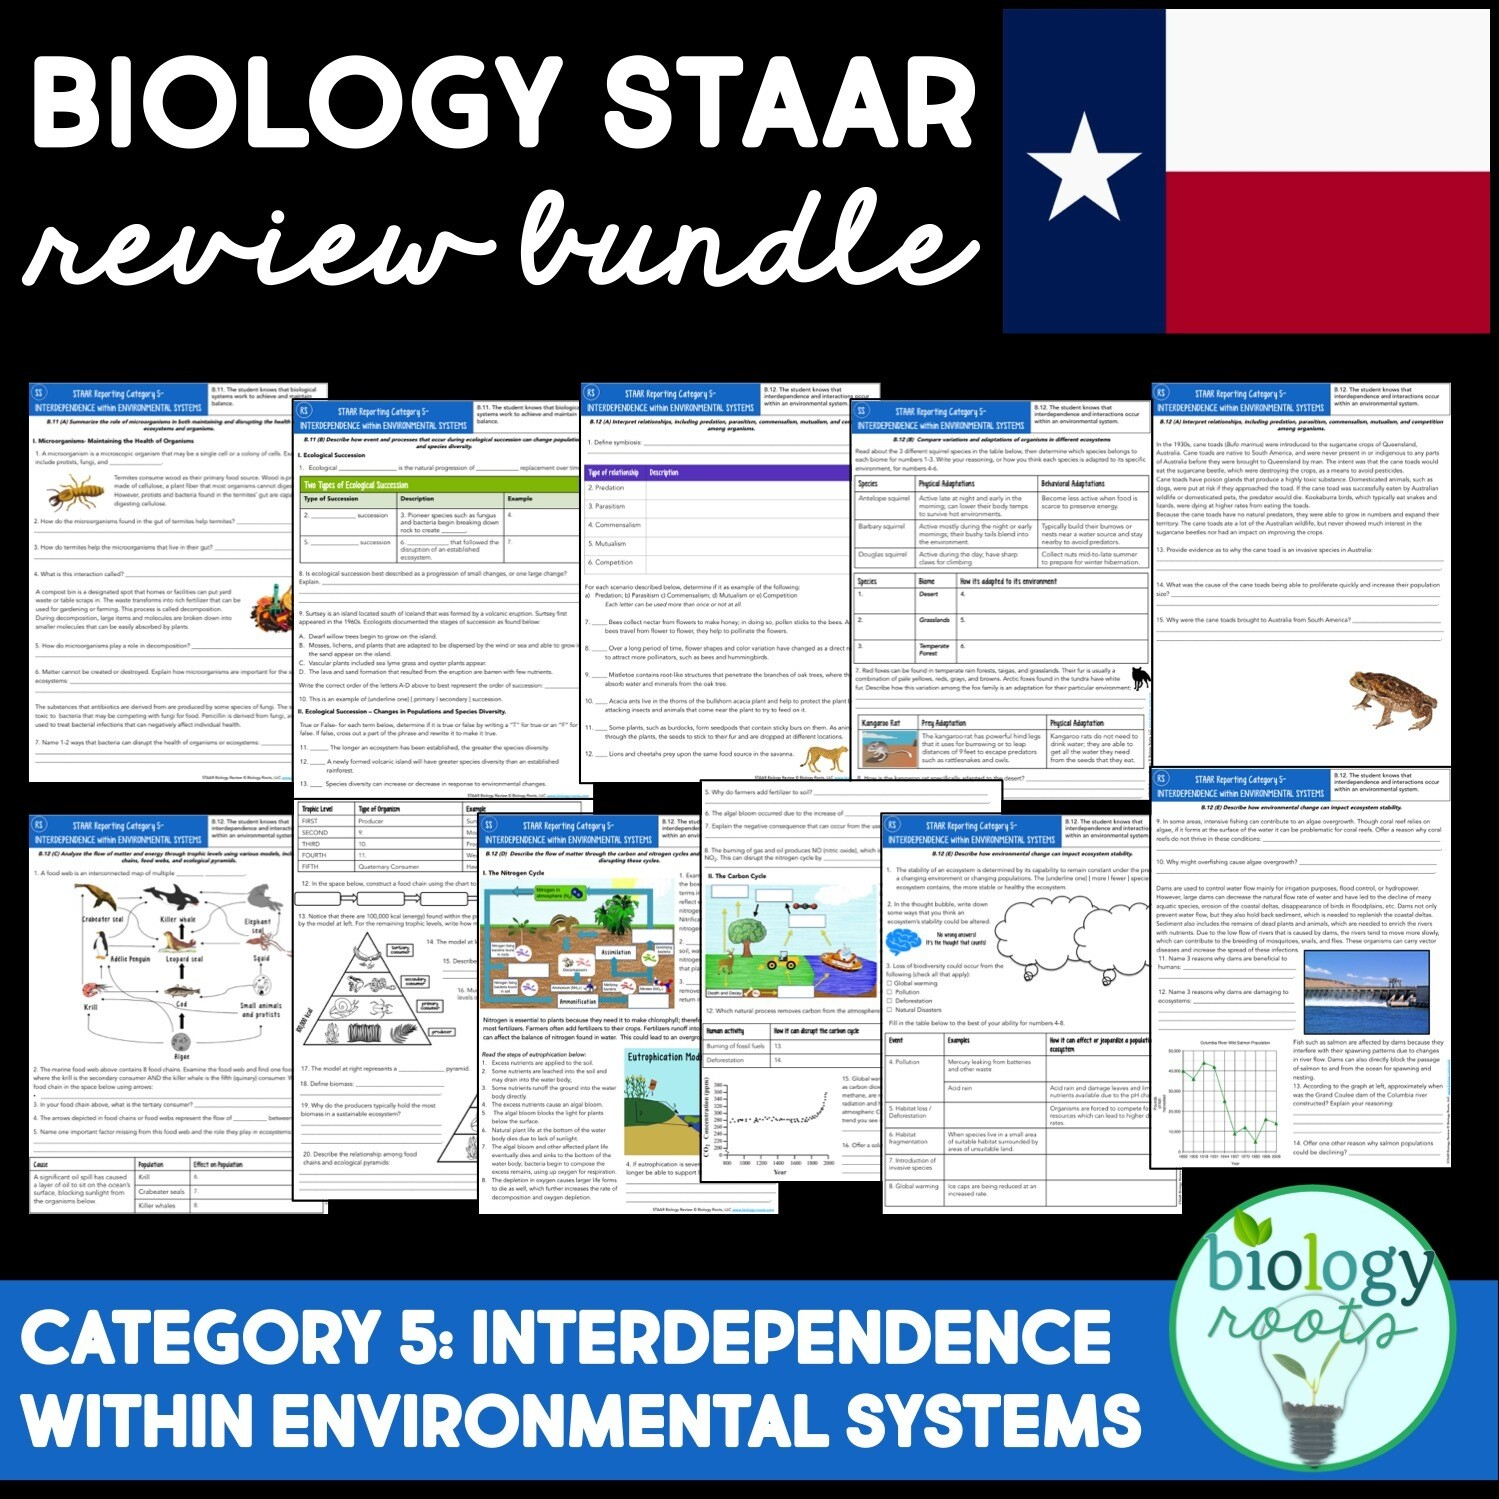 STAAR Biology Review Reporting Category 5